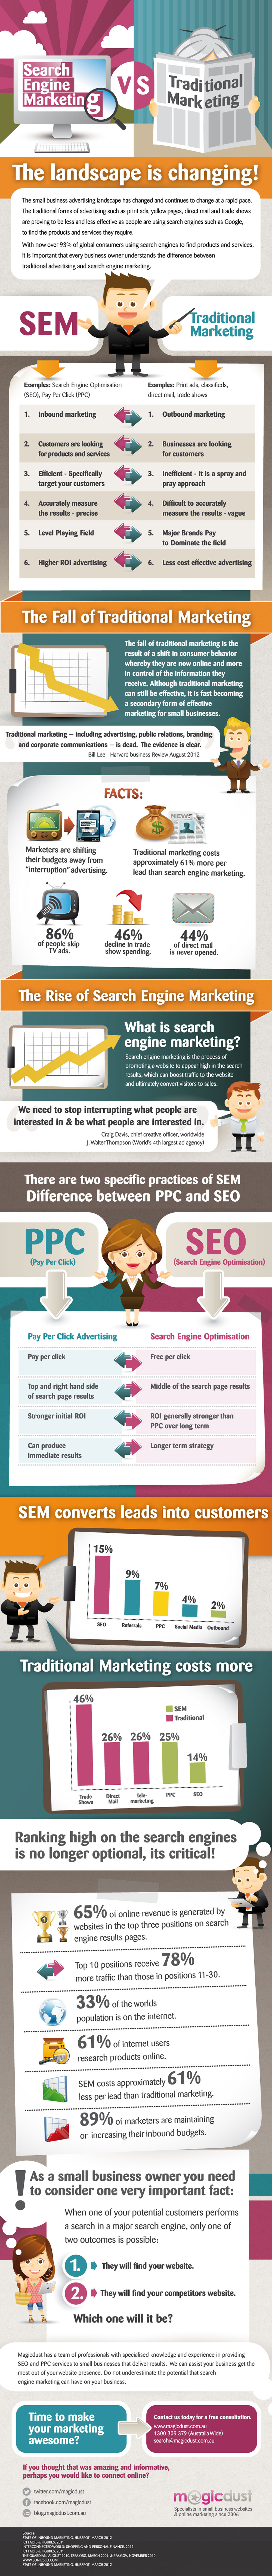 Search Engine Marketing versus traditional marketing